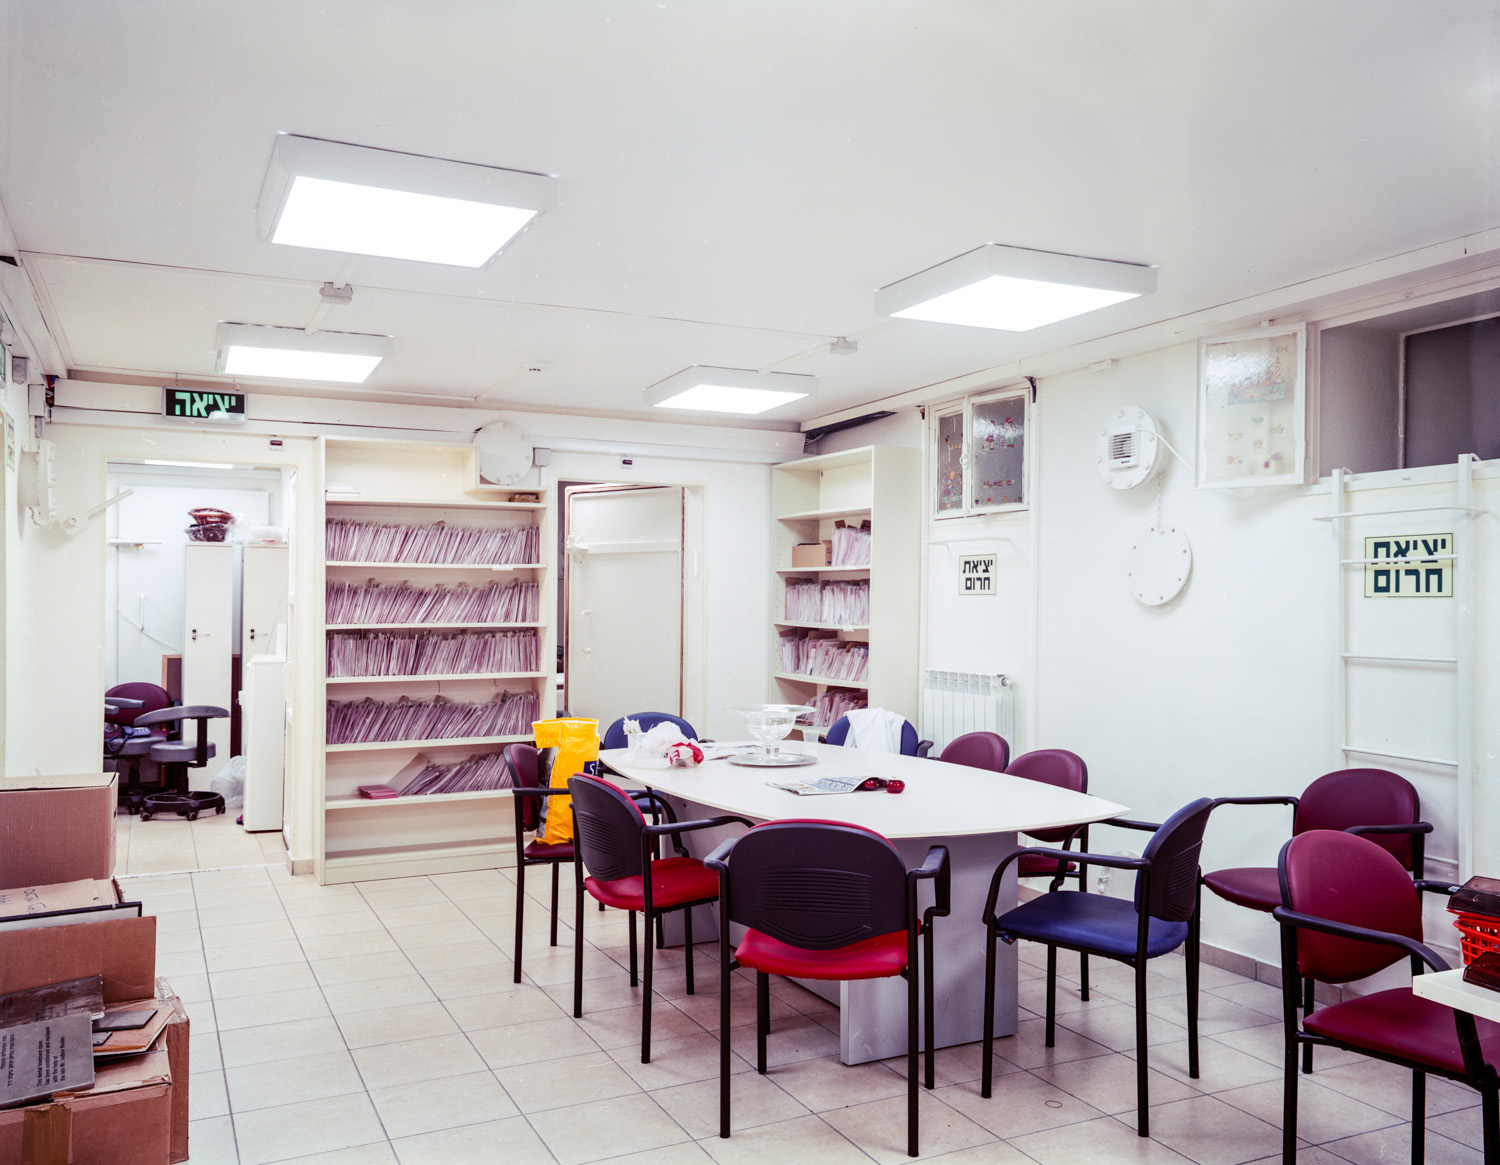 "Dentist Office, Jerusalem,  2007, Chromogenic print, 20"" x 30"""